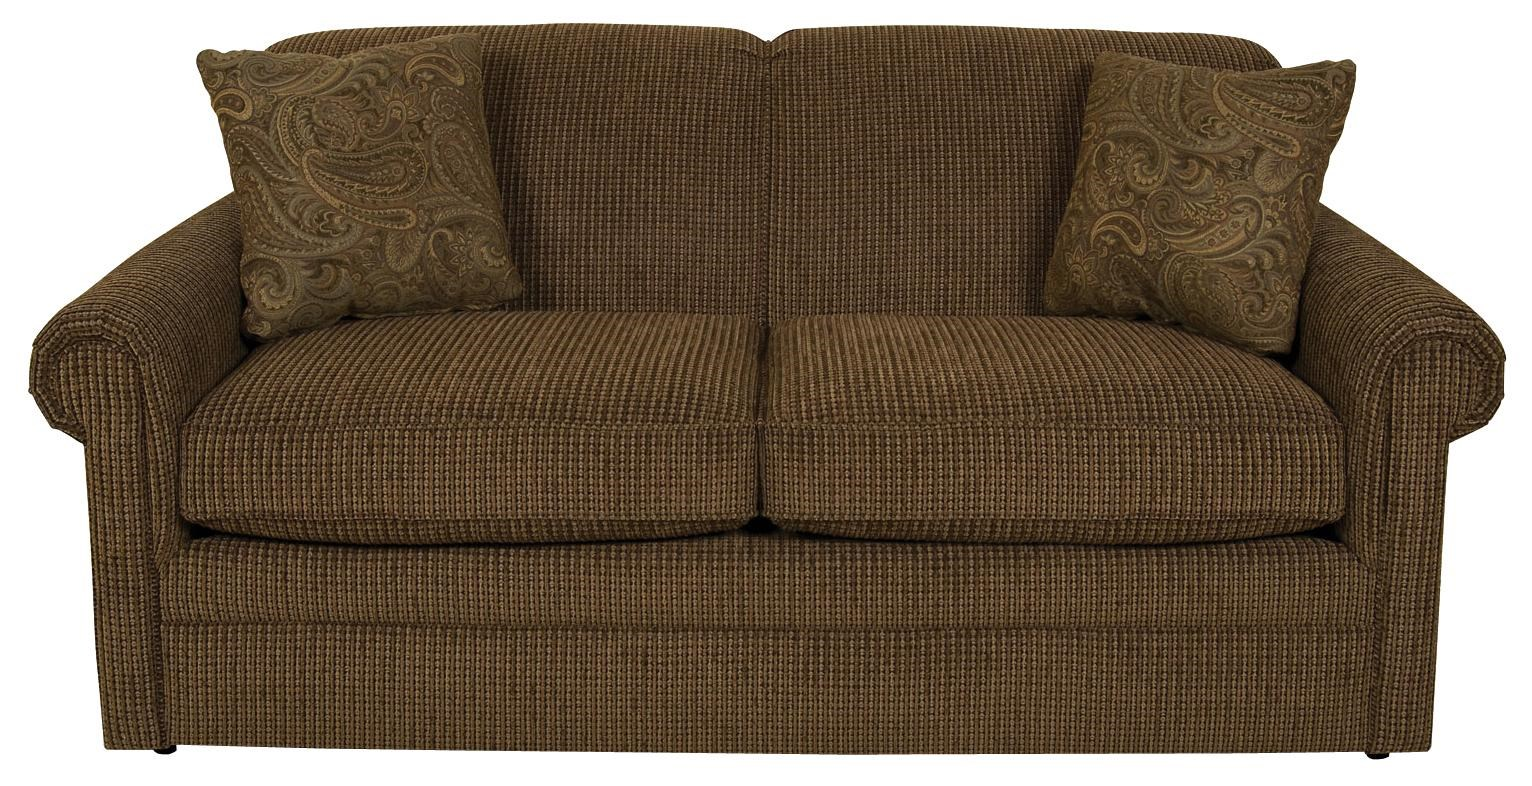 Attrayant England Savona Visco Full Size Sleeper Loveseat With Traditional Furniture  Style